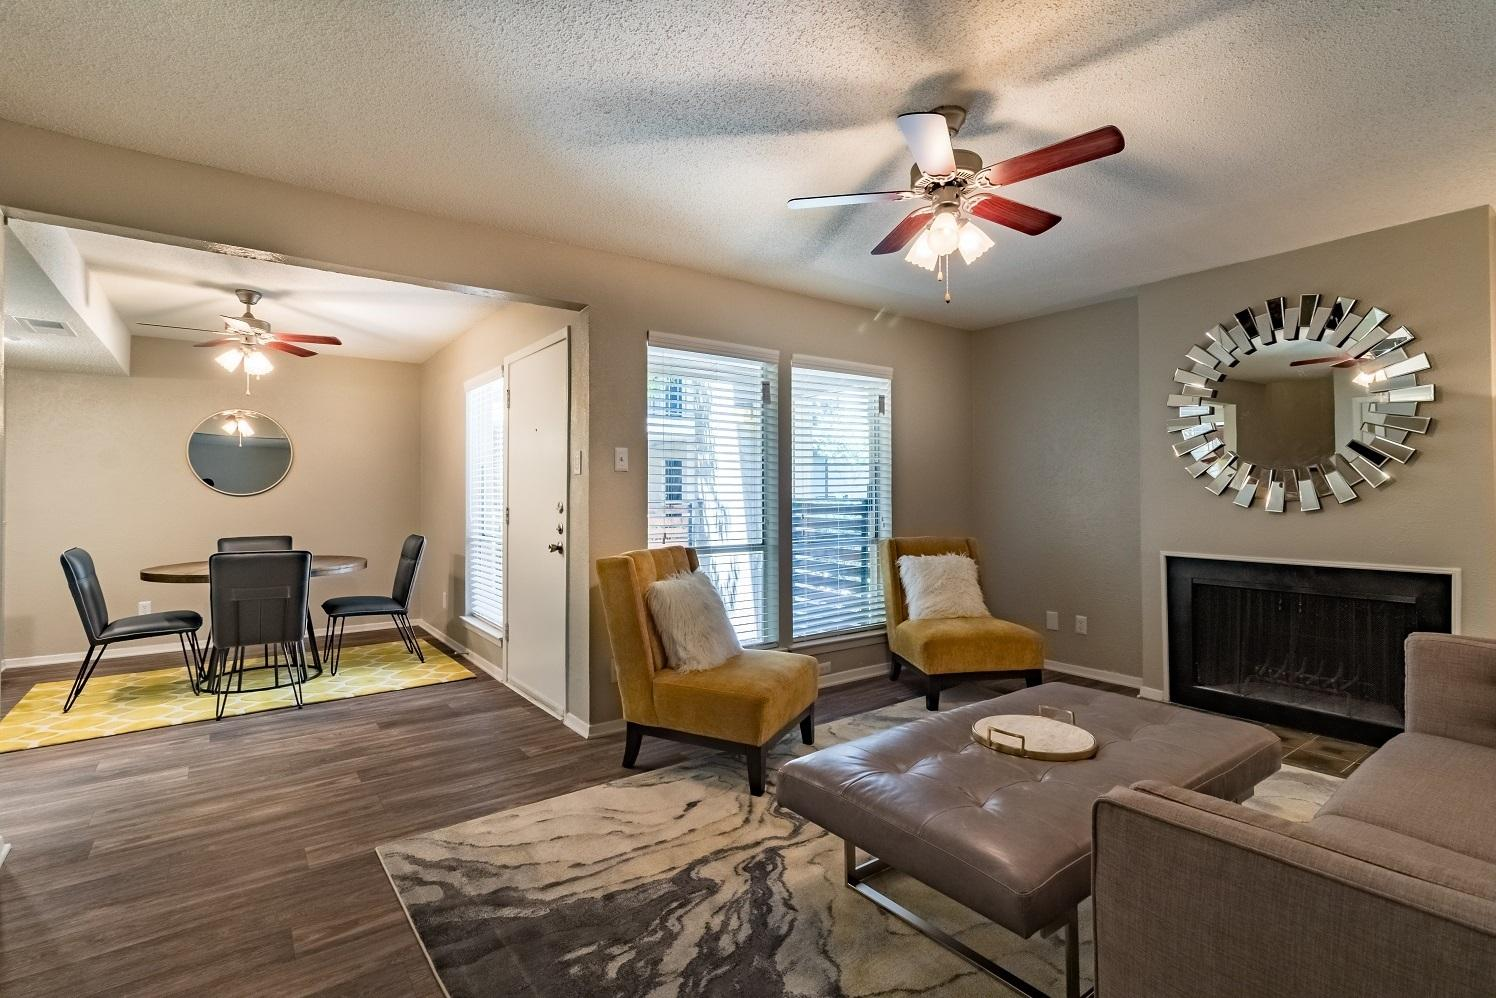 Woods of ridgmar apartments fort worth tx walk score - Cheap 3 bedroom apartments in fort worth tx ...